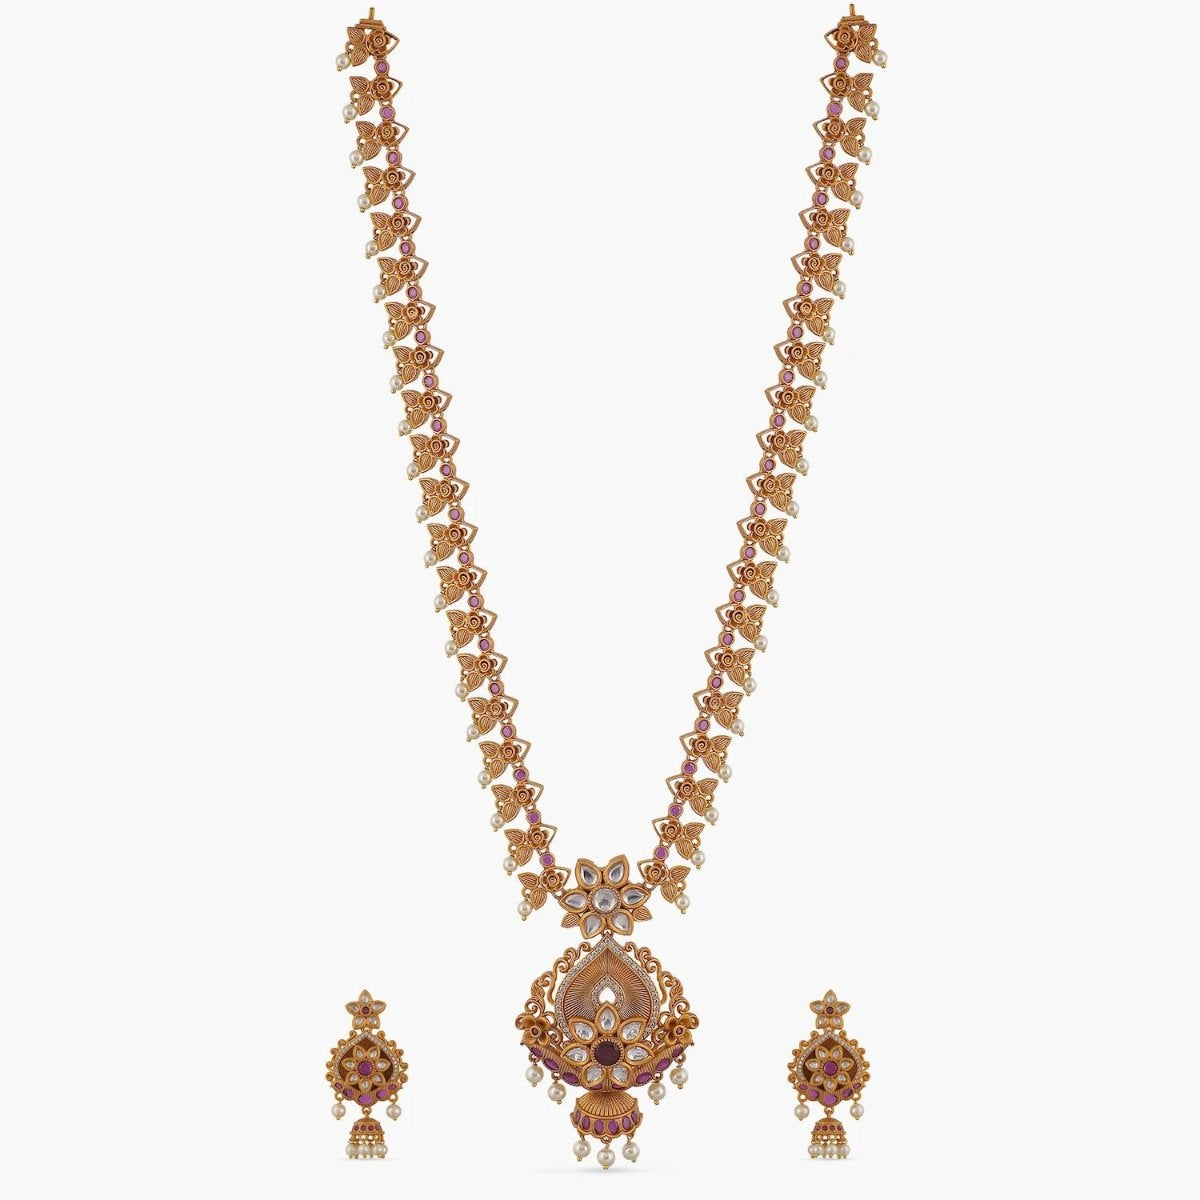 Pranavi Antique Long Necklace Set